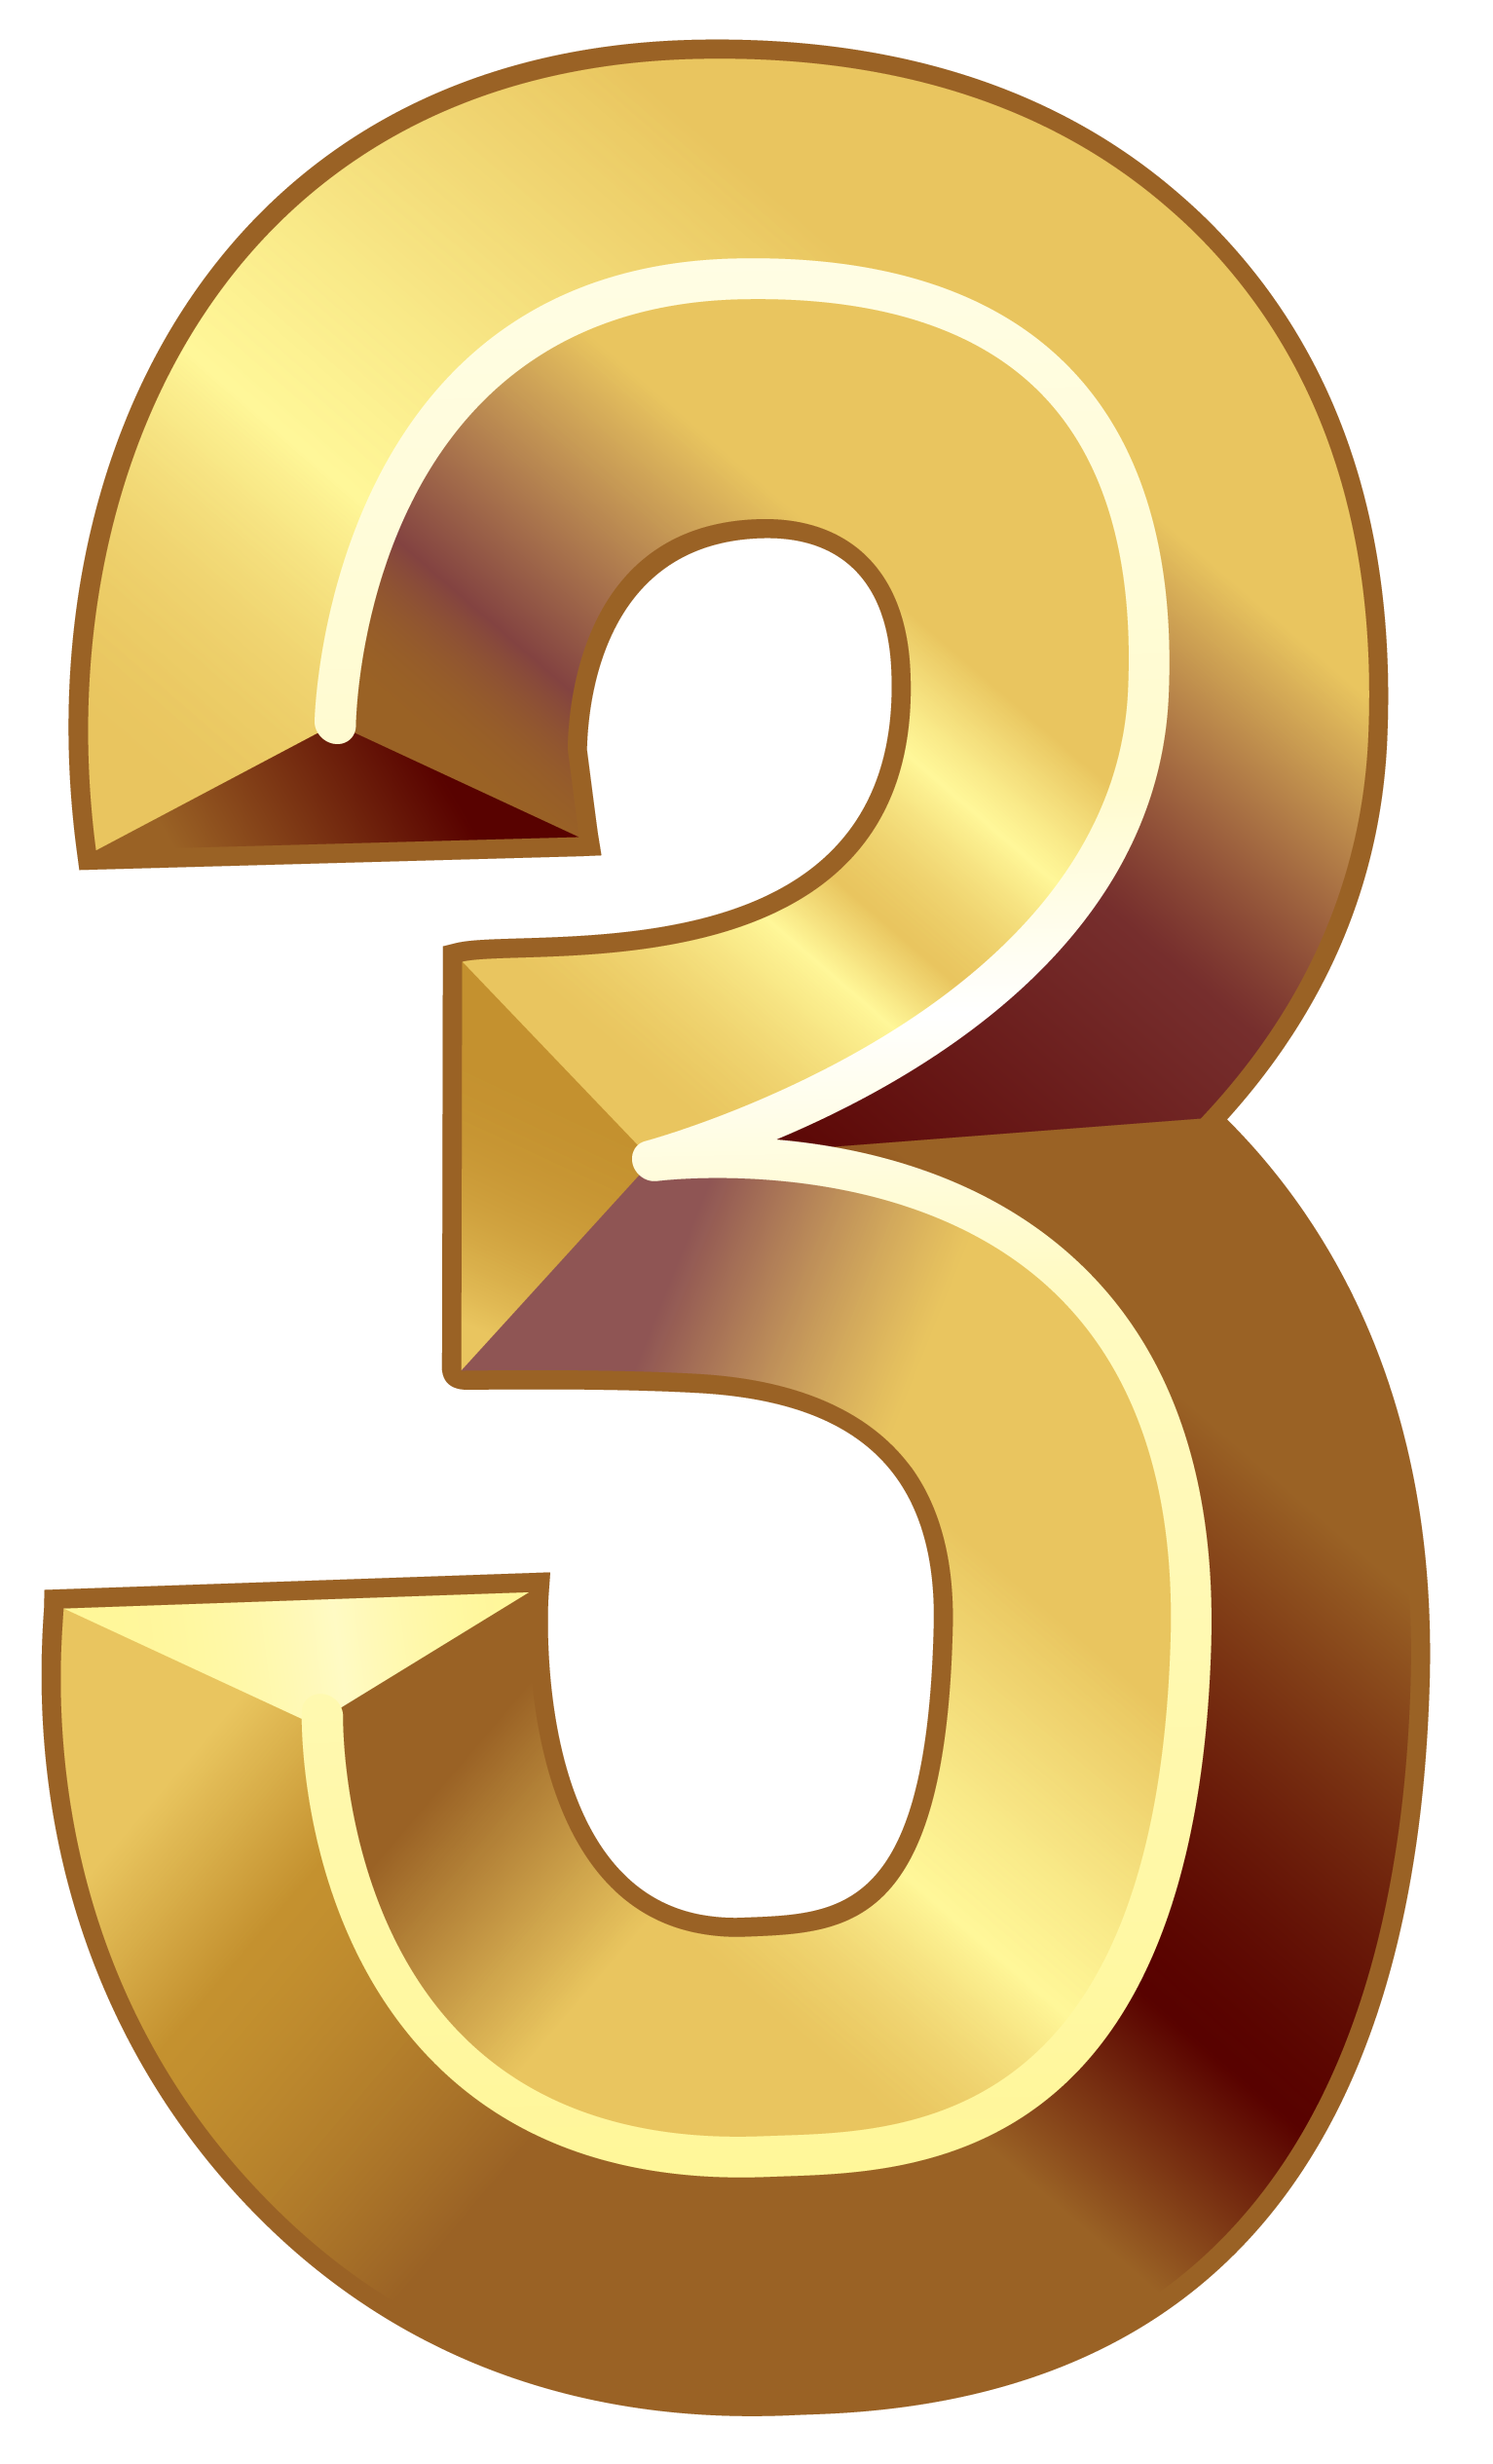 Https Gallery Yopriceville Com Free Clipart Pictures Decorative Numbers Gold Number Three Png Clipart Image Gold Number Clip Art Free Clip Art